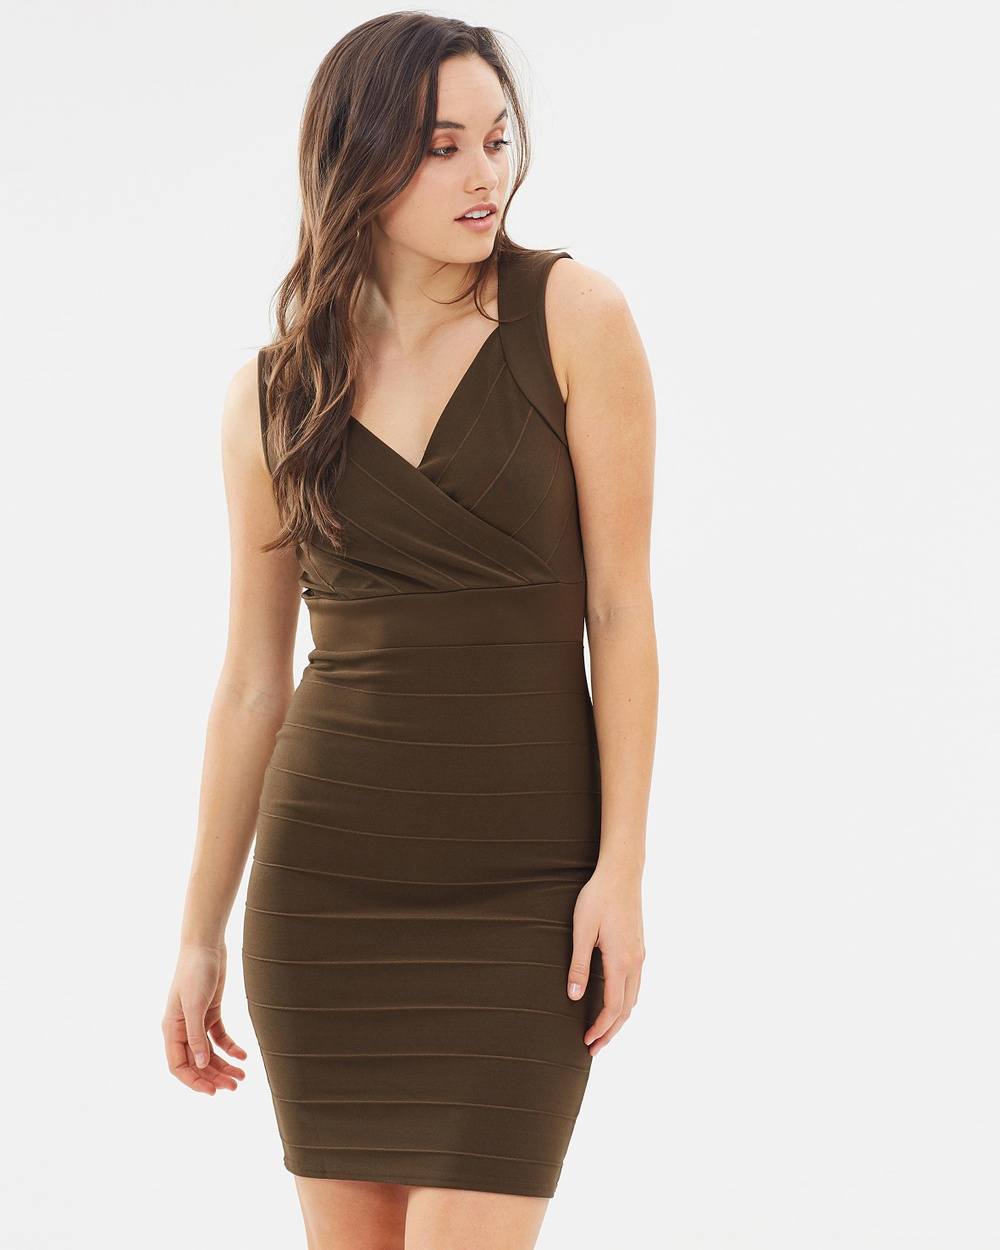 Dorothy Perkins Sweetheart Bandage Dress Bodycon Dresses Olive Sweetheart Bandage Dress